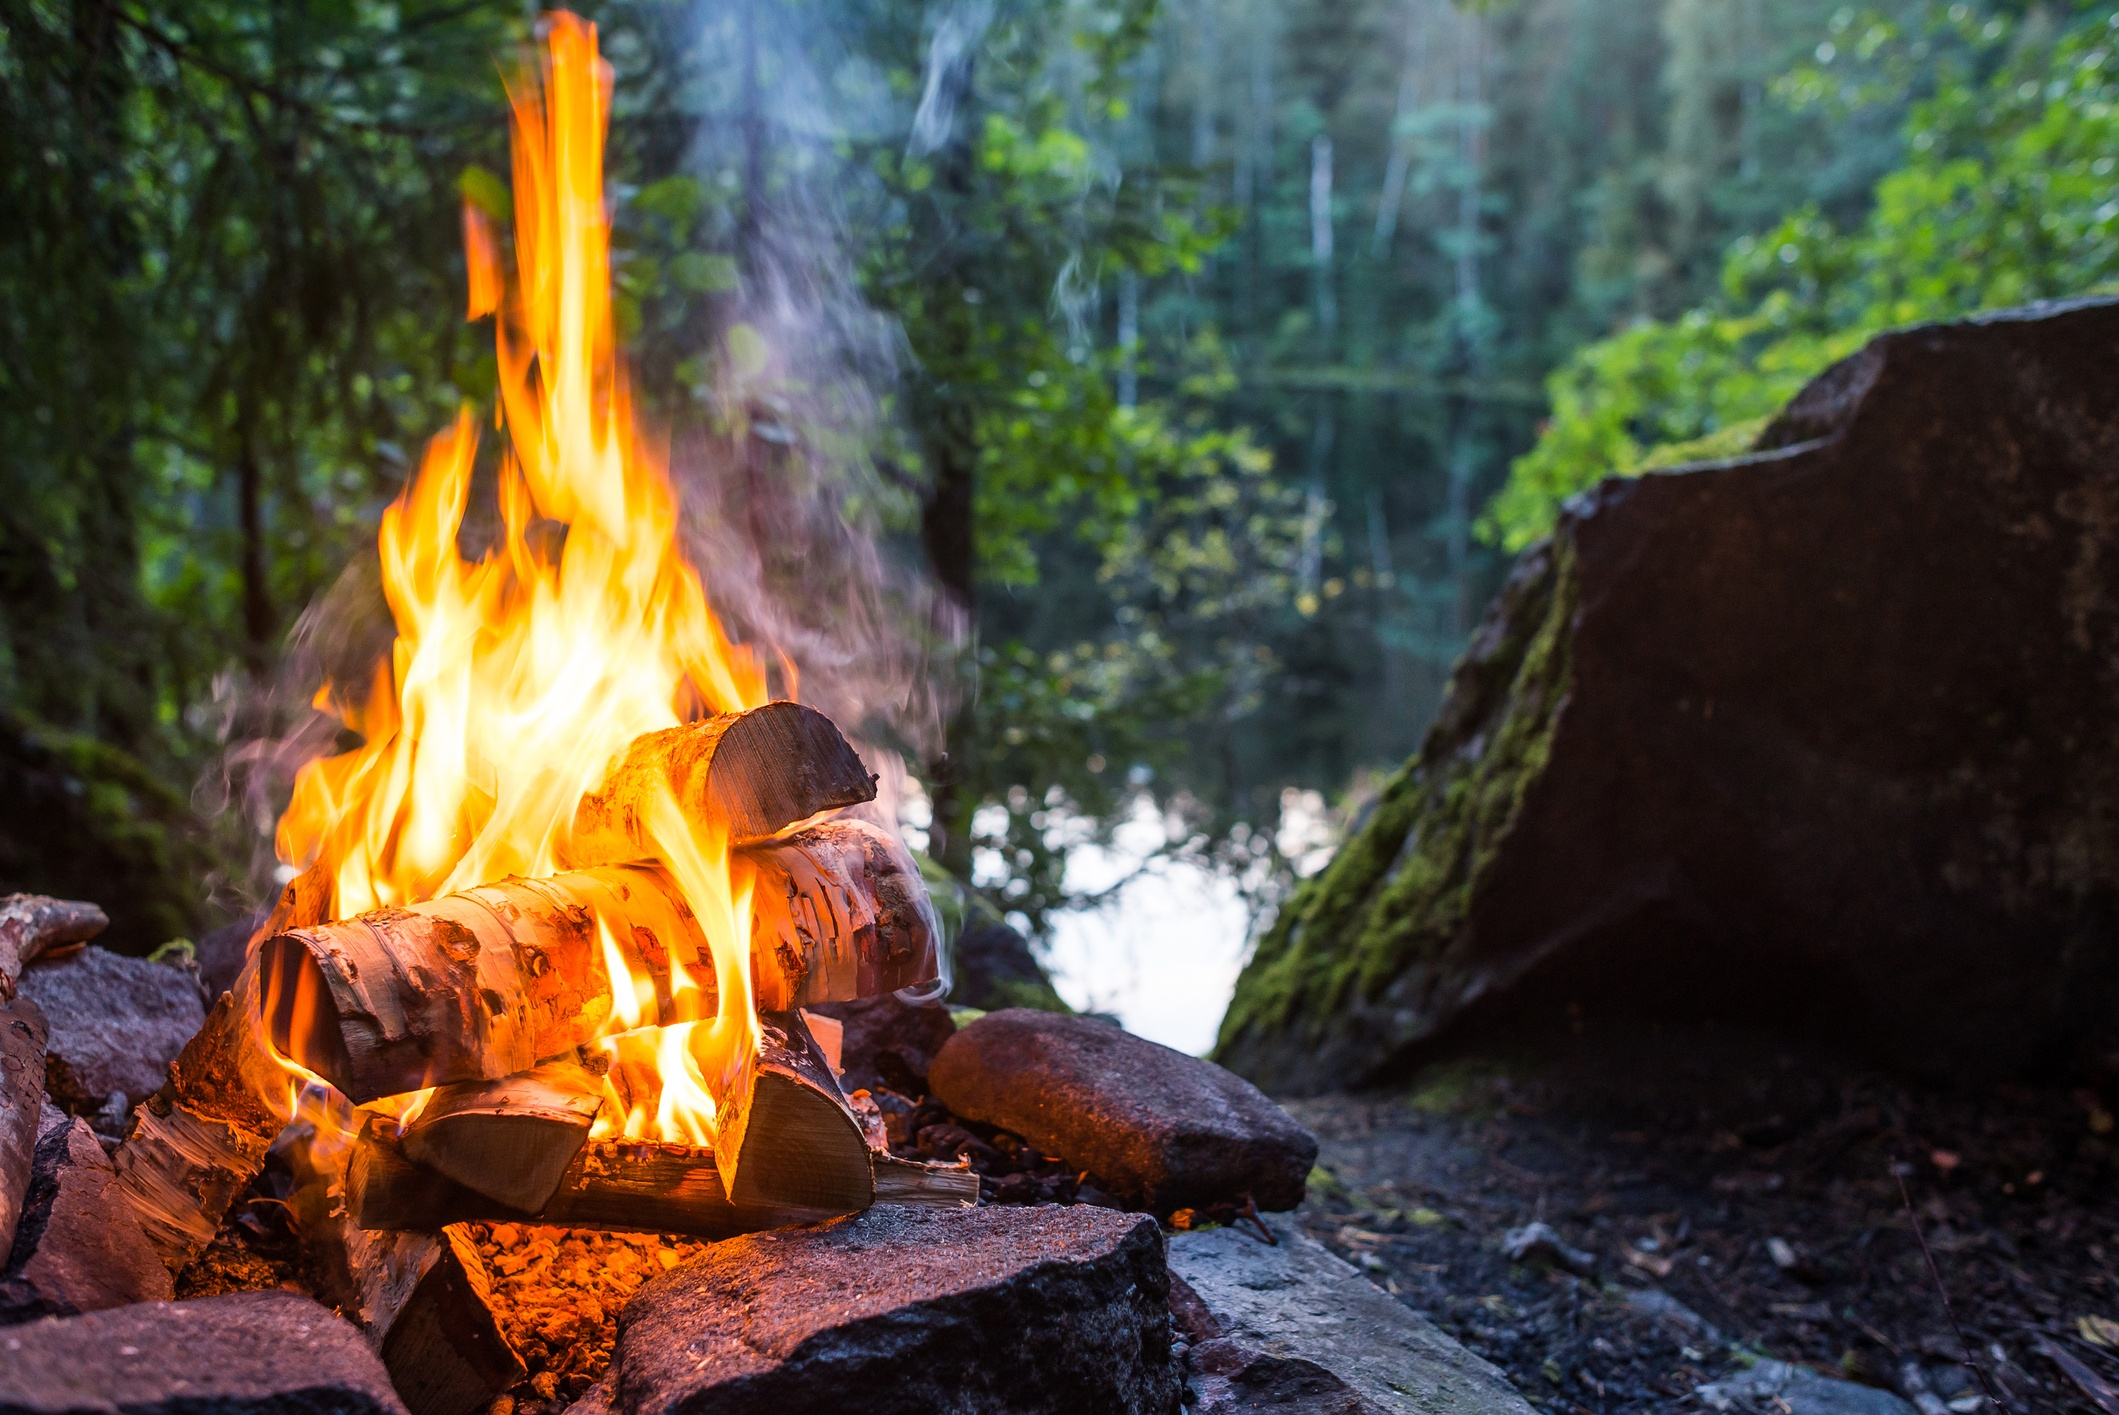 Closeup of burning campfire in forest